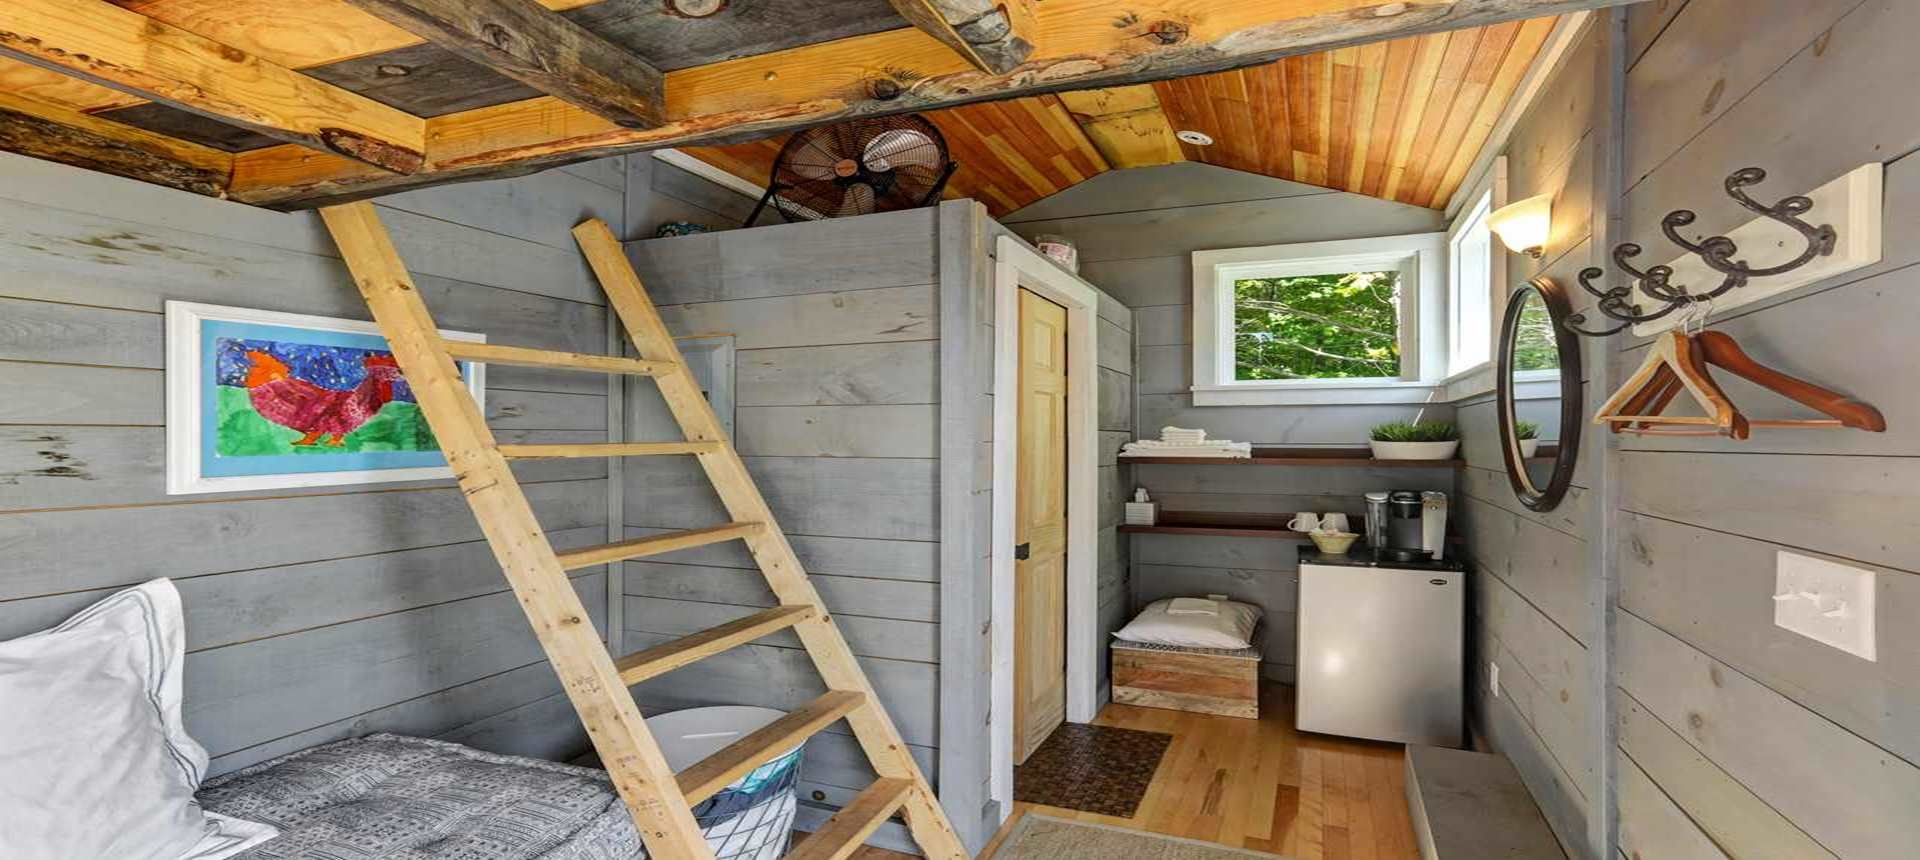 A second interior photo of the Tiny House at The Inn at Grace Farm